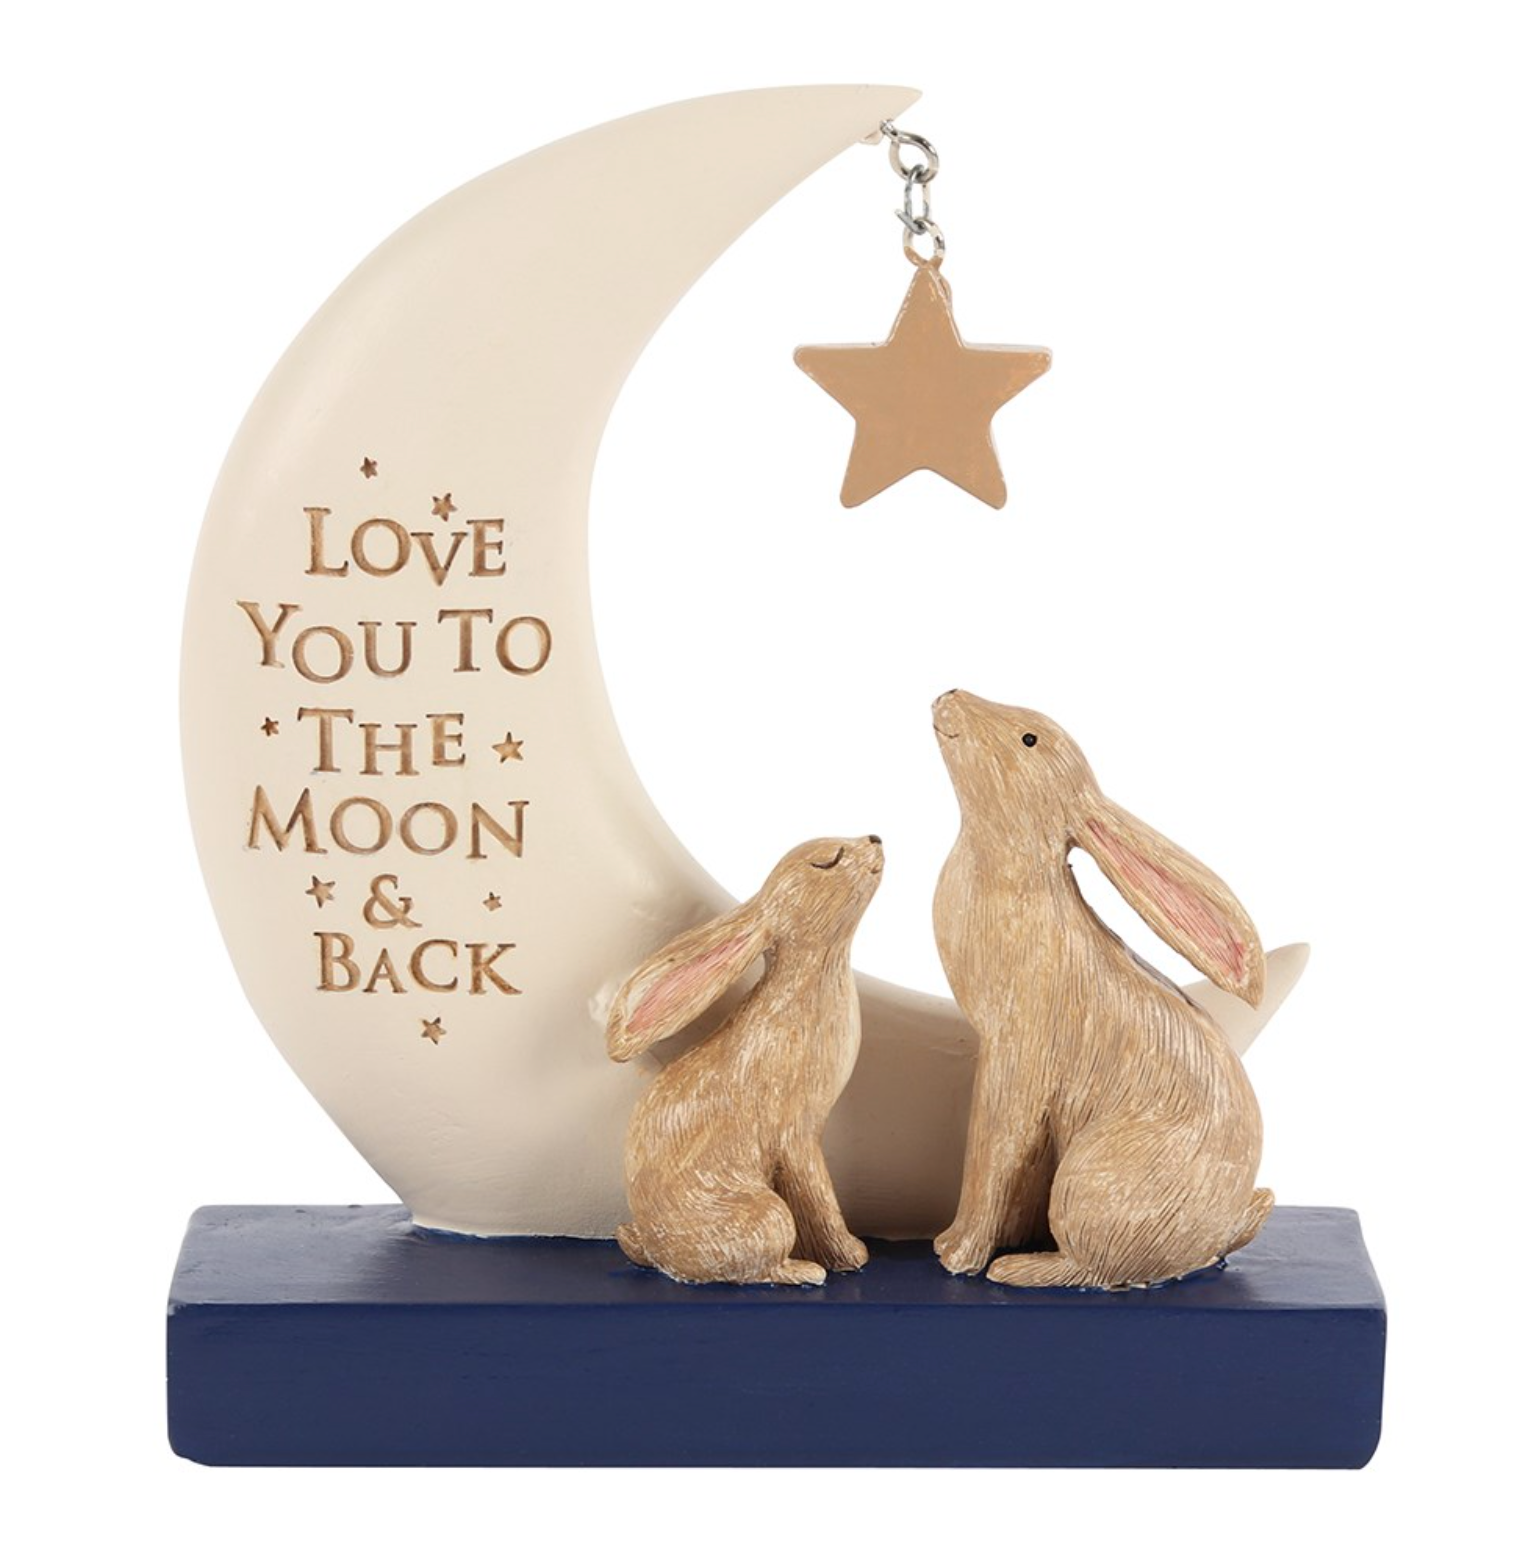 I Love You To The Moon and Back Decorative Sign